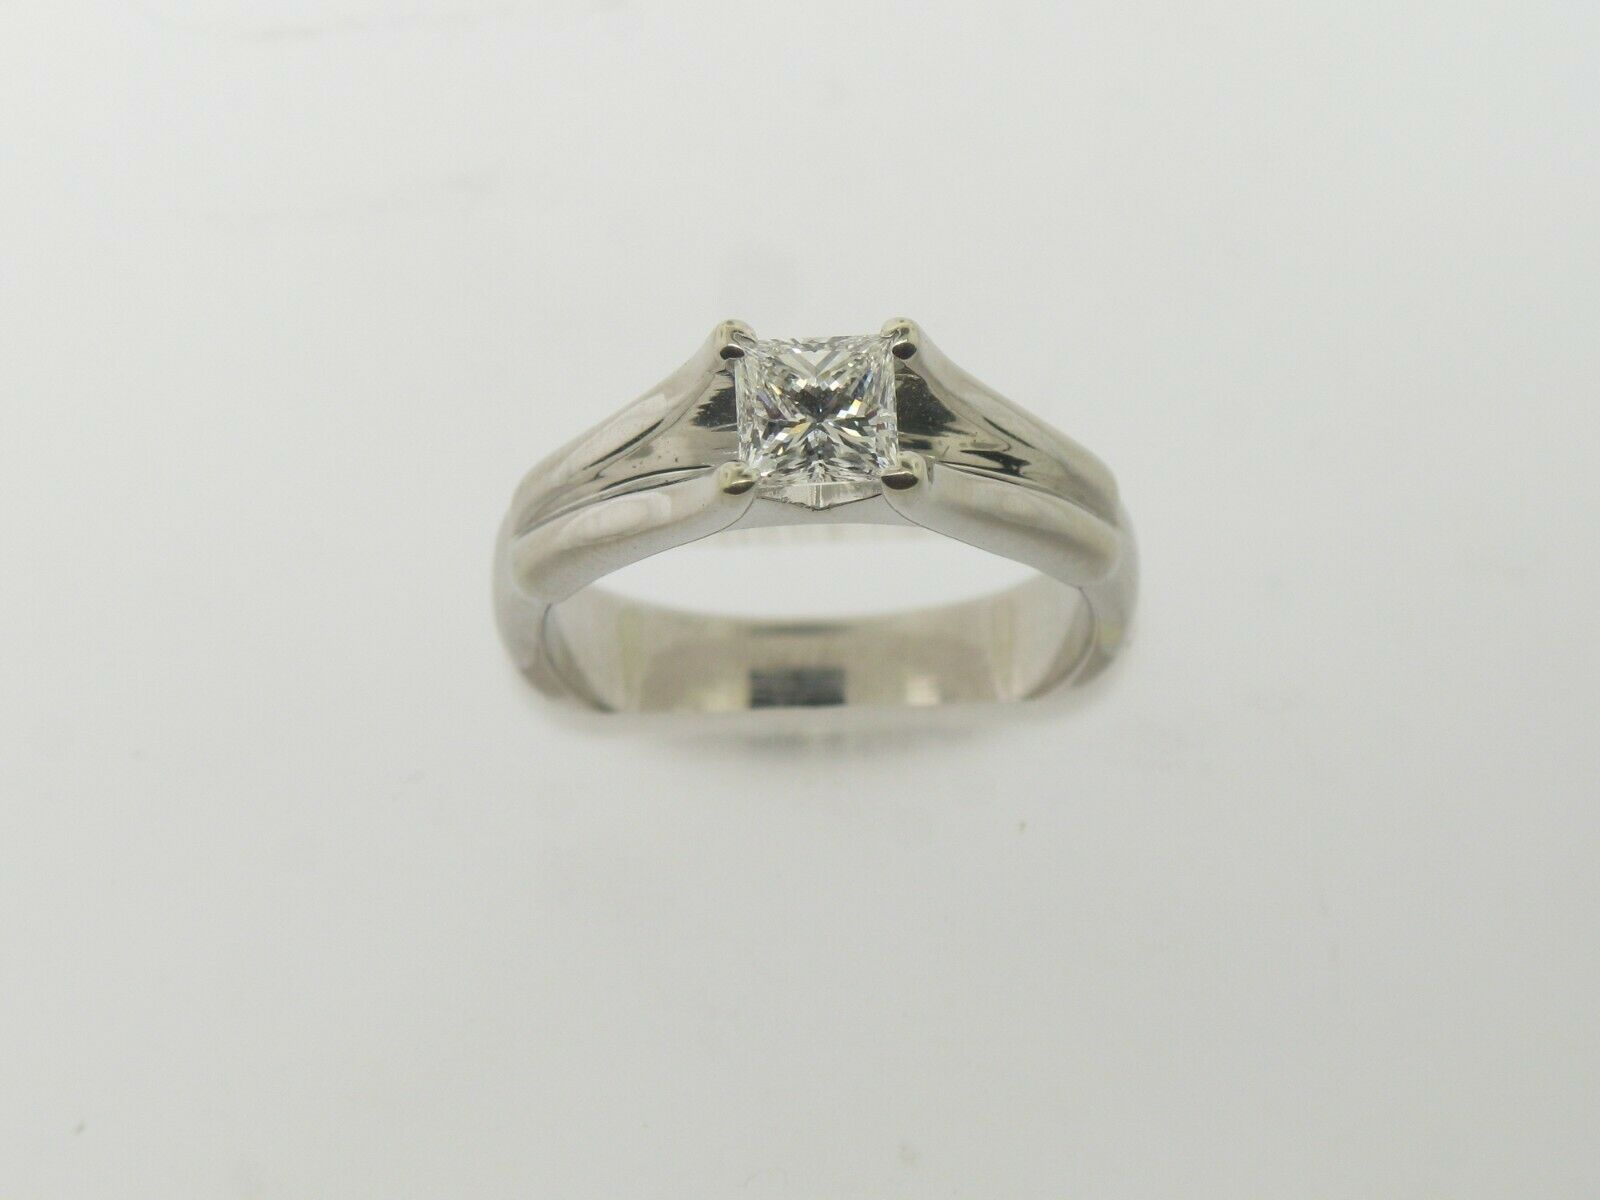 18K White Gold .64 CT Princess Cut Engagement Ring (Internally Flawless) (GIA) 9